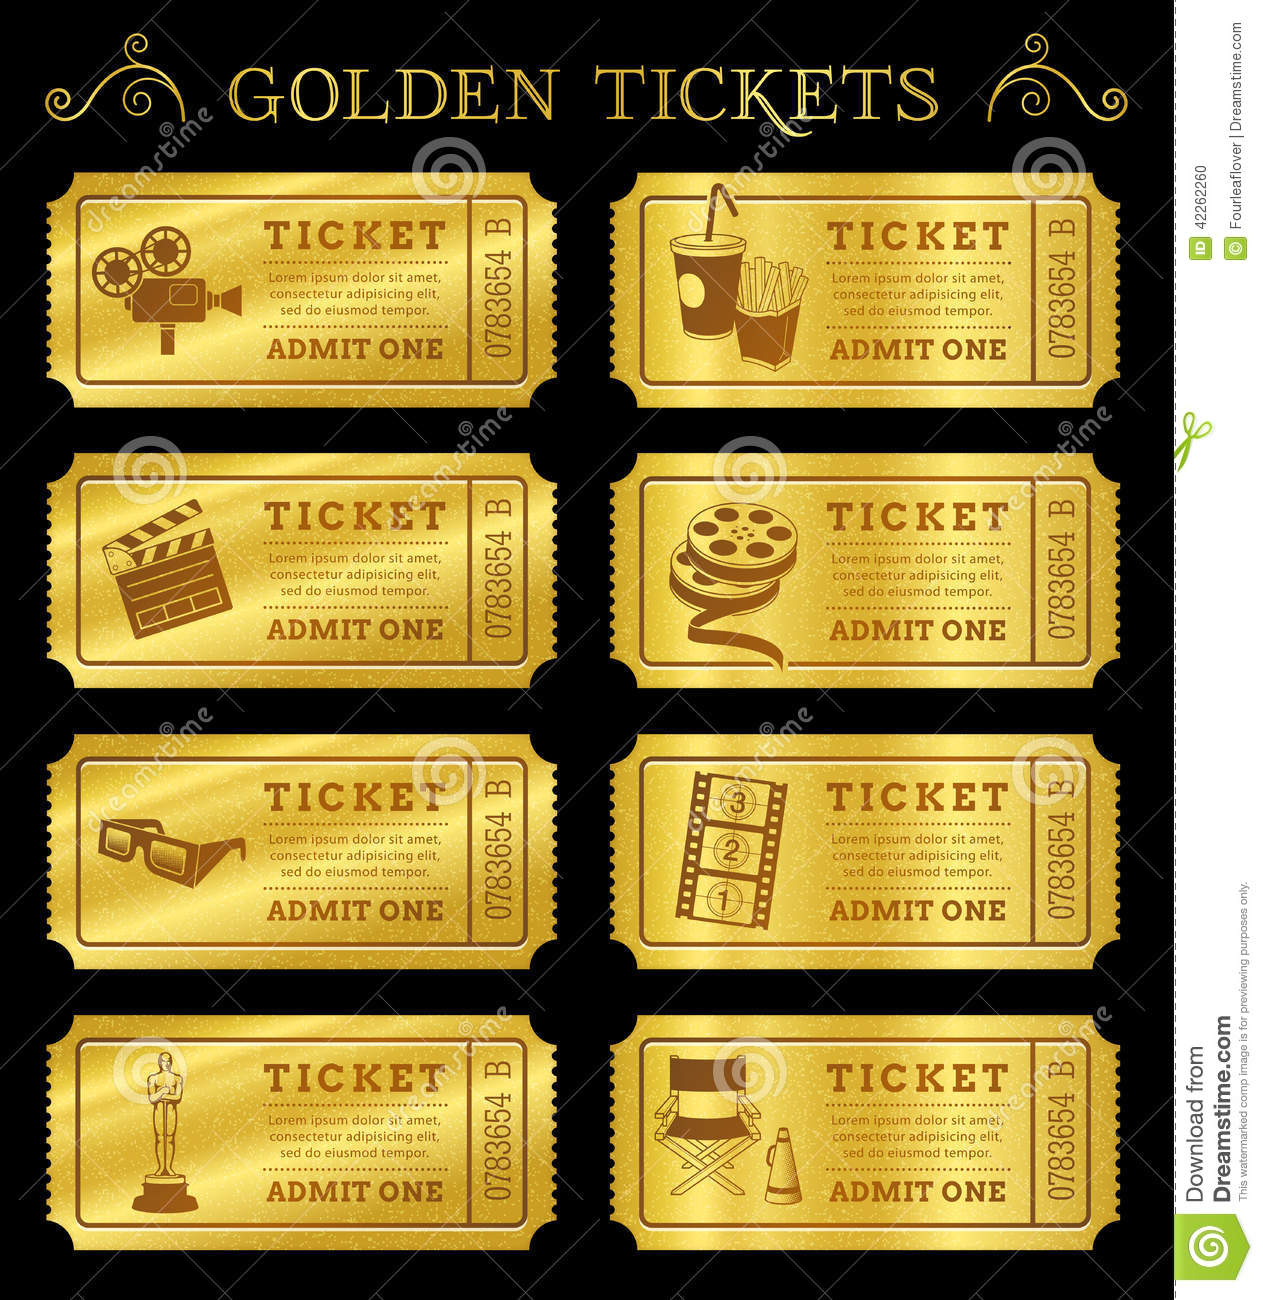 Stock Illustration Golden Vector Cinema Tickets Set Eight Coupons Templates File Organized Layers To Separate Graphic Elements Image42262260 on free printable movie ticket templates